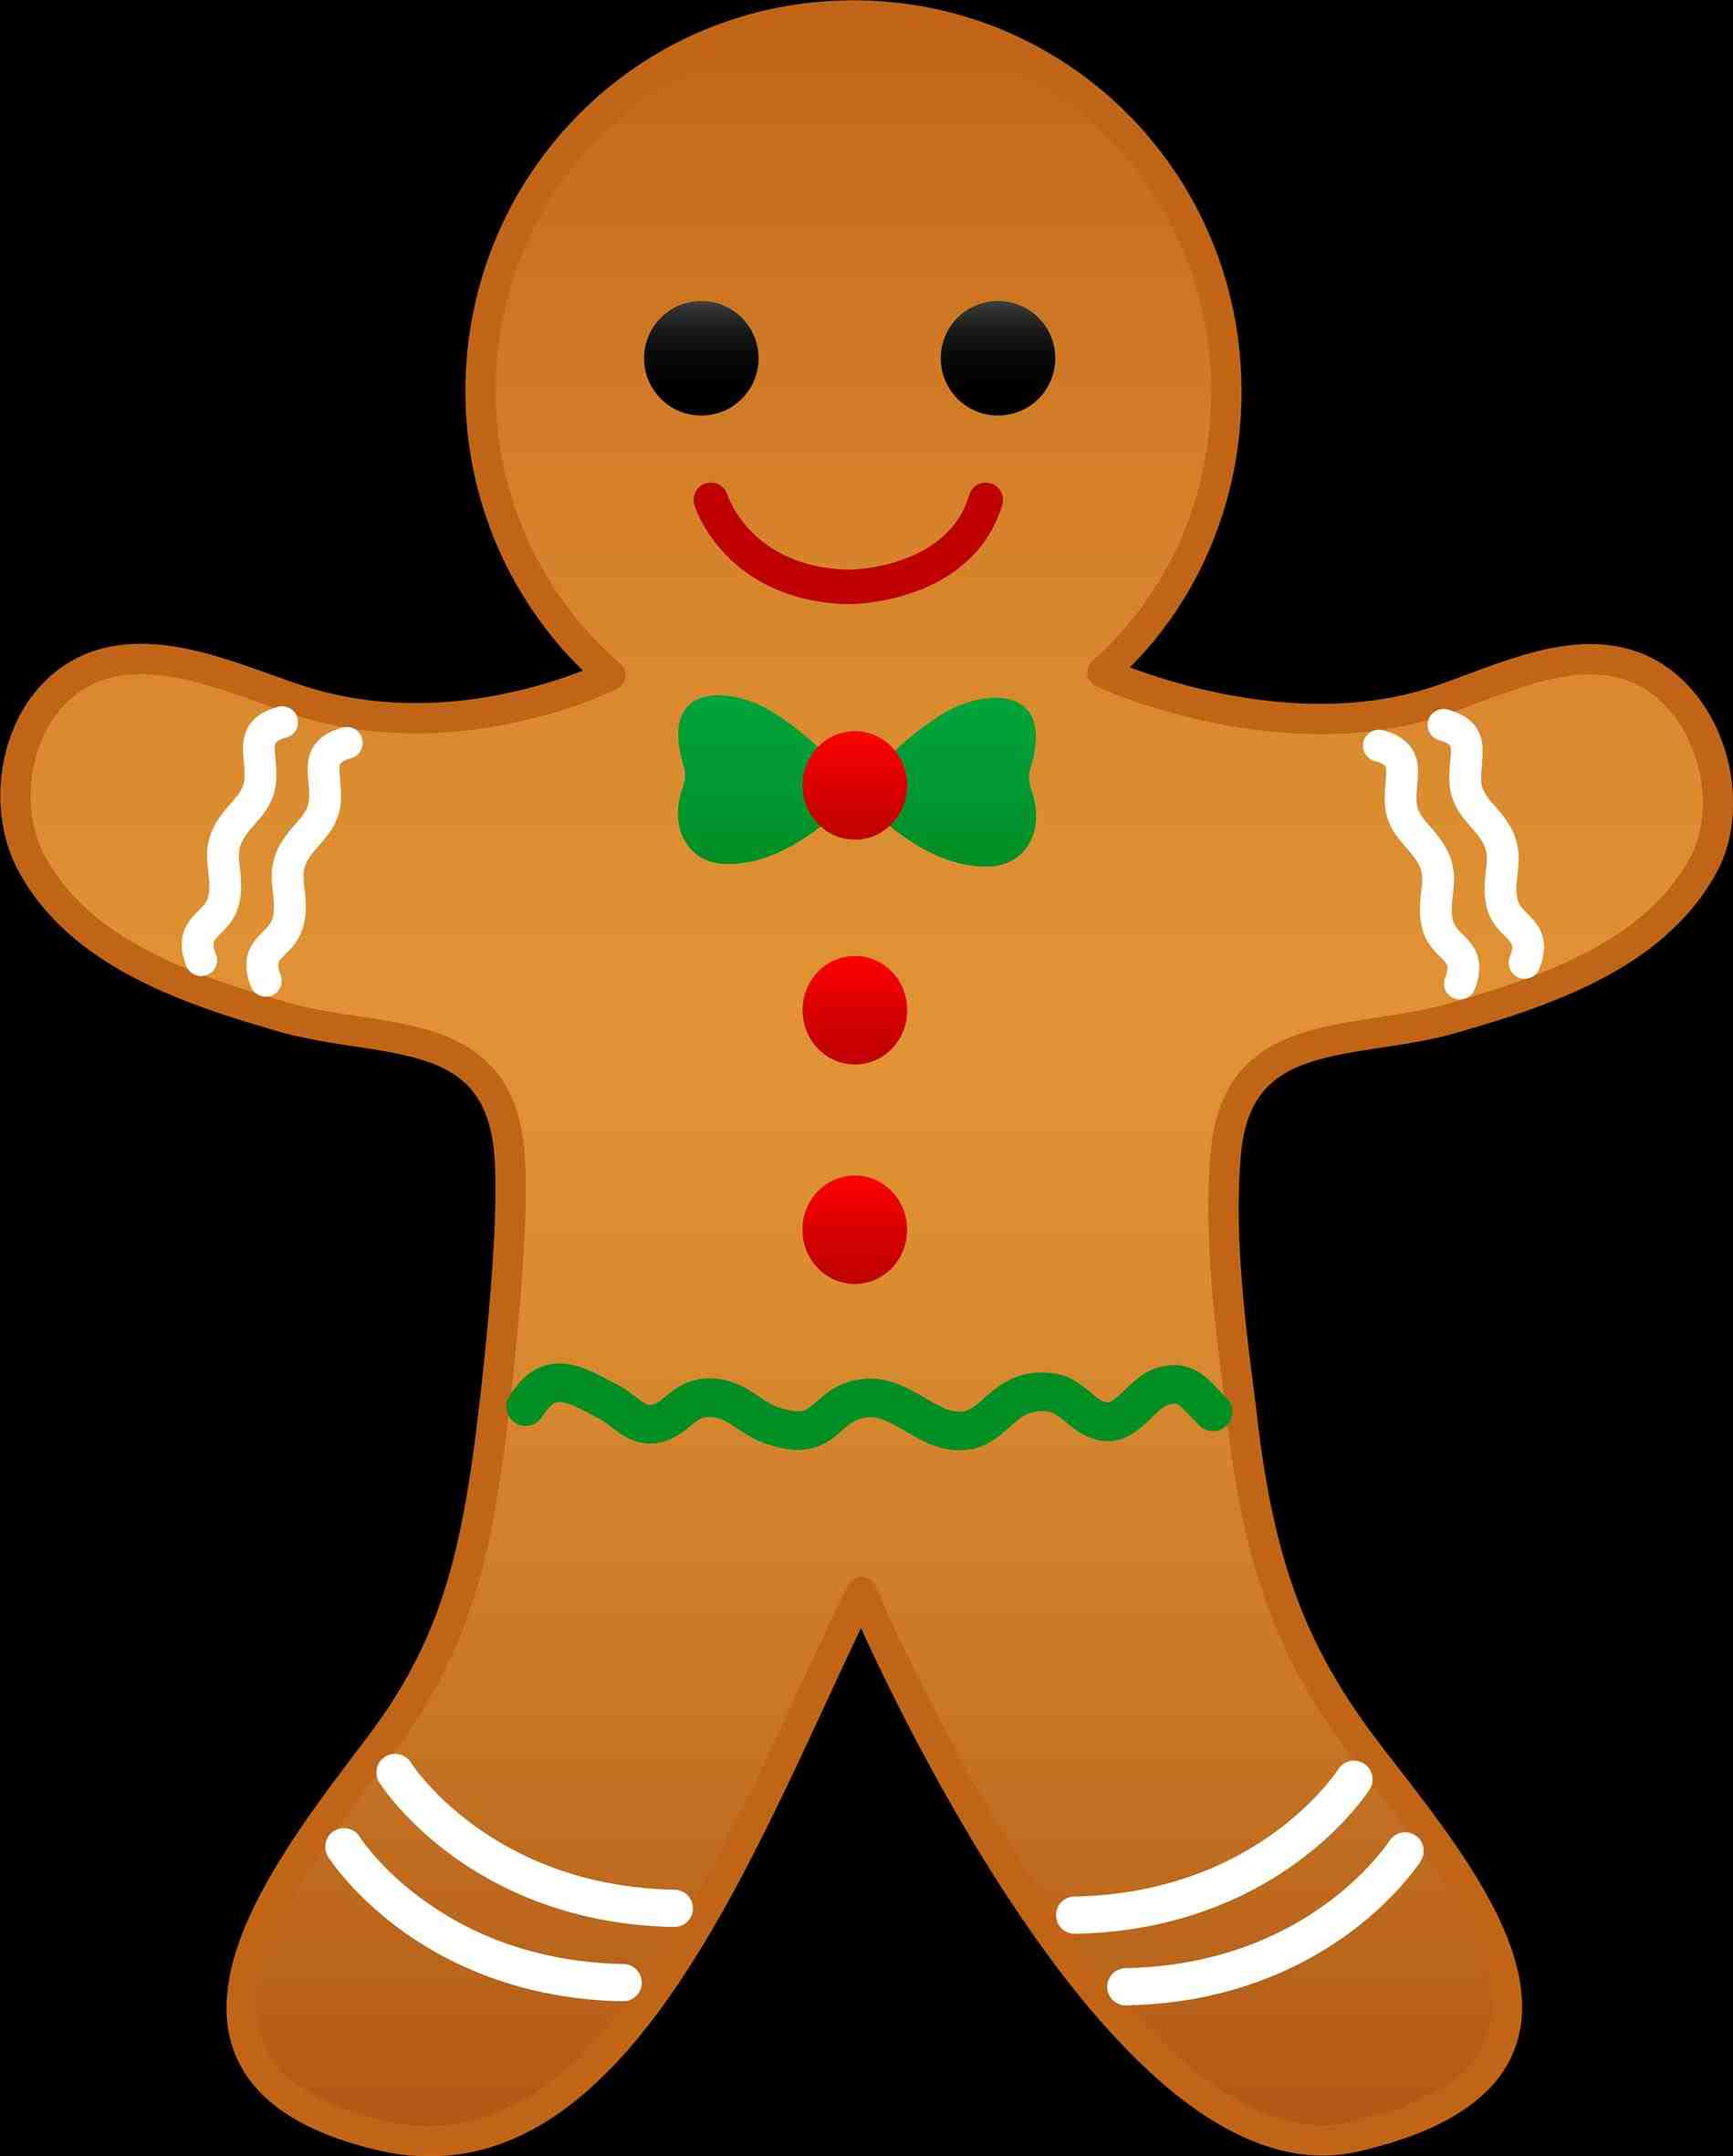 1899x2363 Man Clipart Gcom Kid Ingcom Kid Christmas Gingerbread Man Clipart